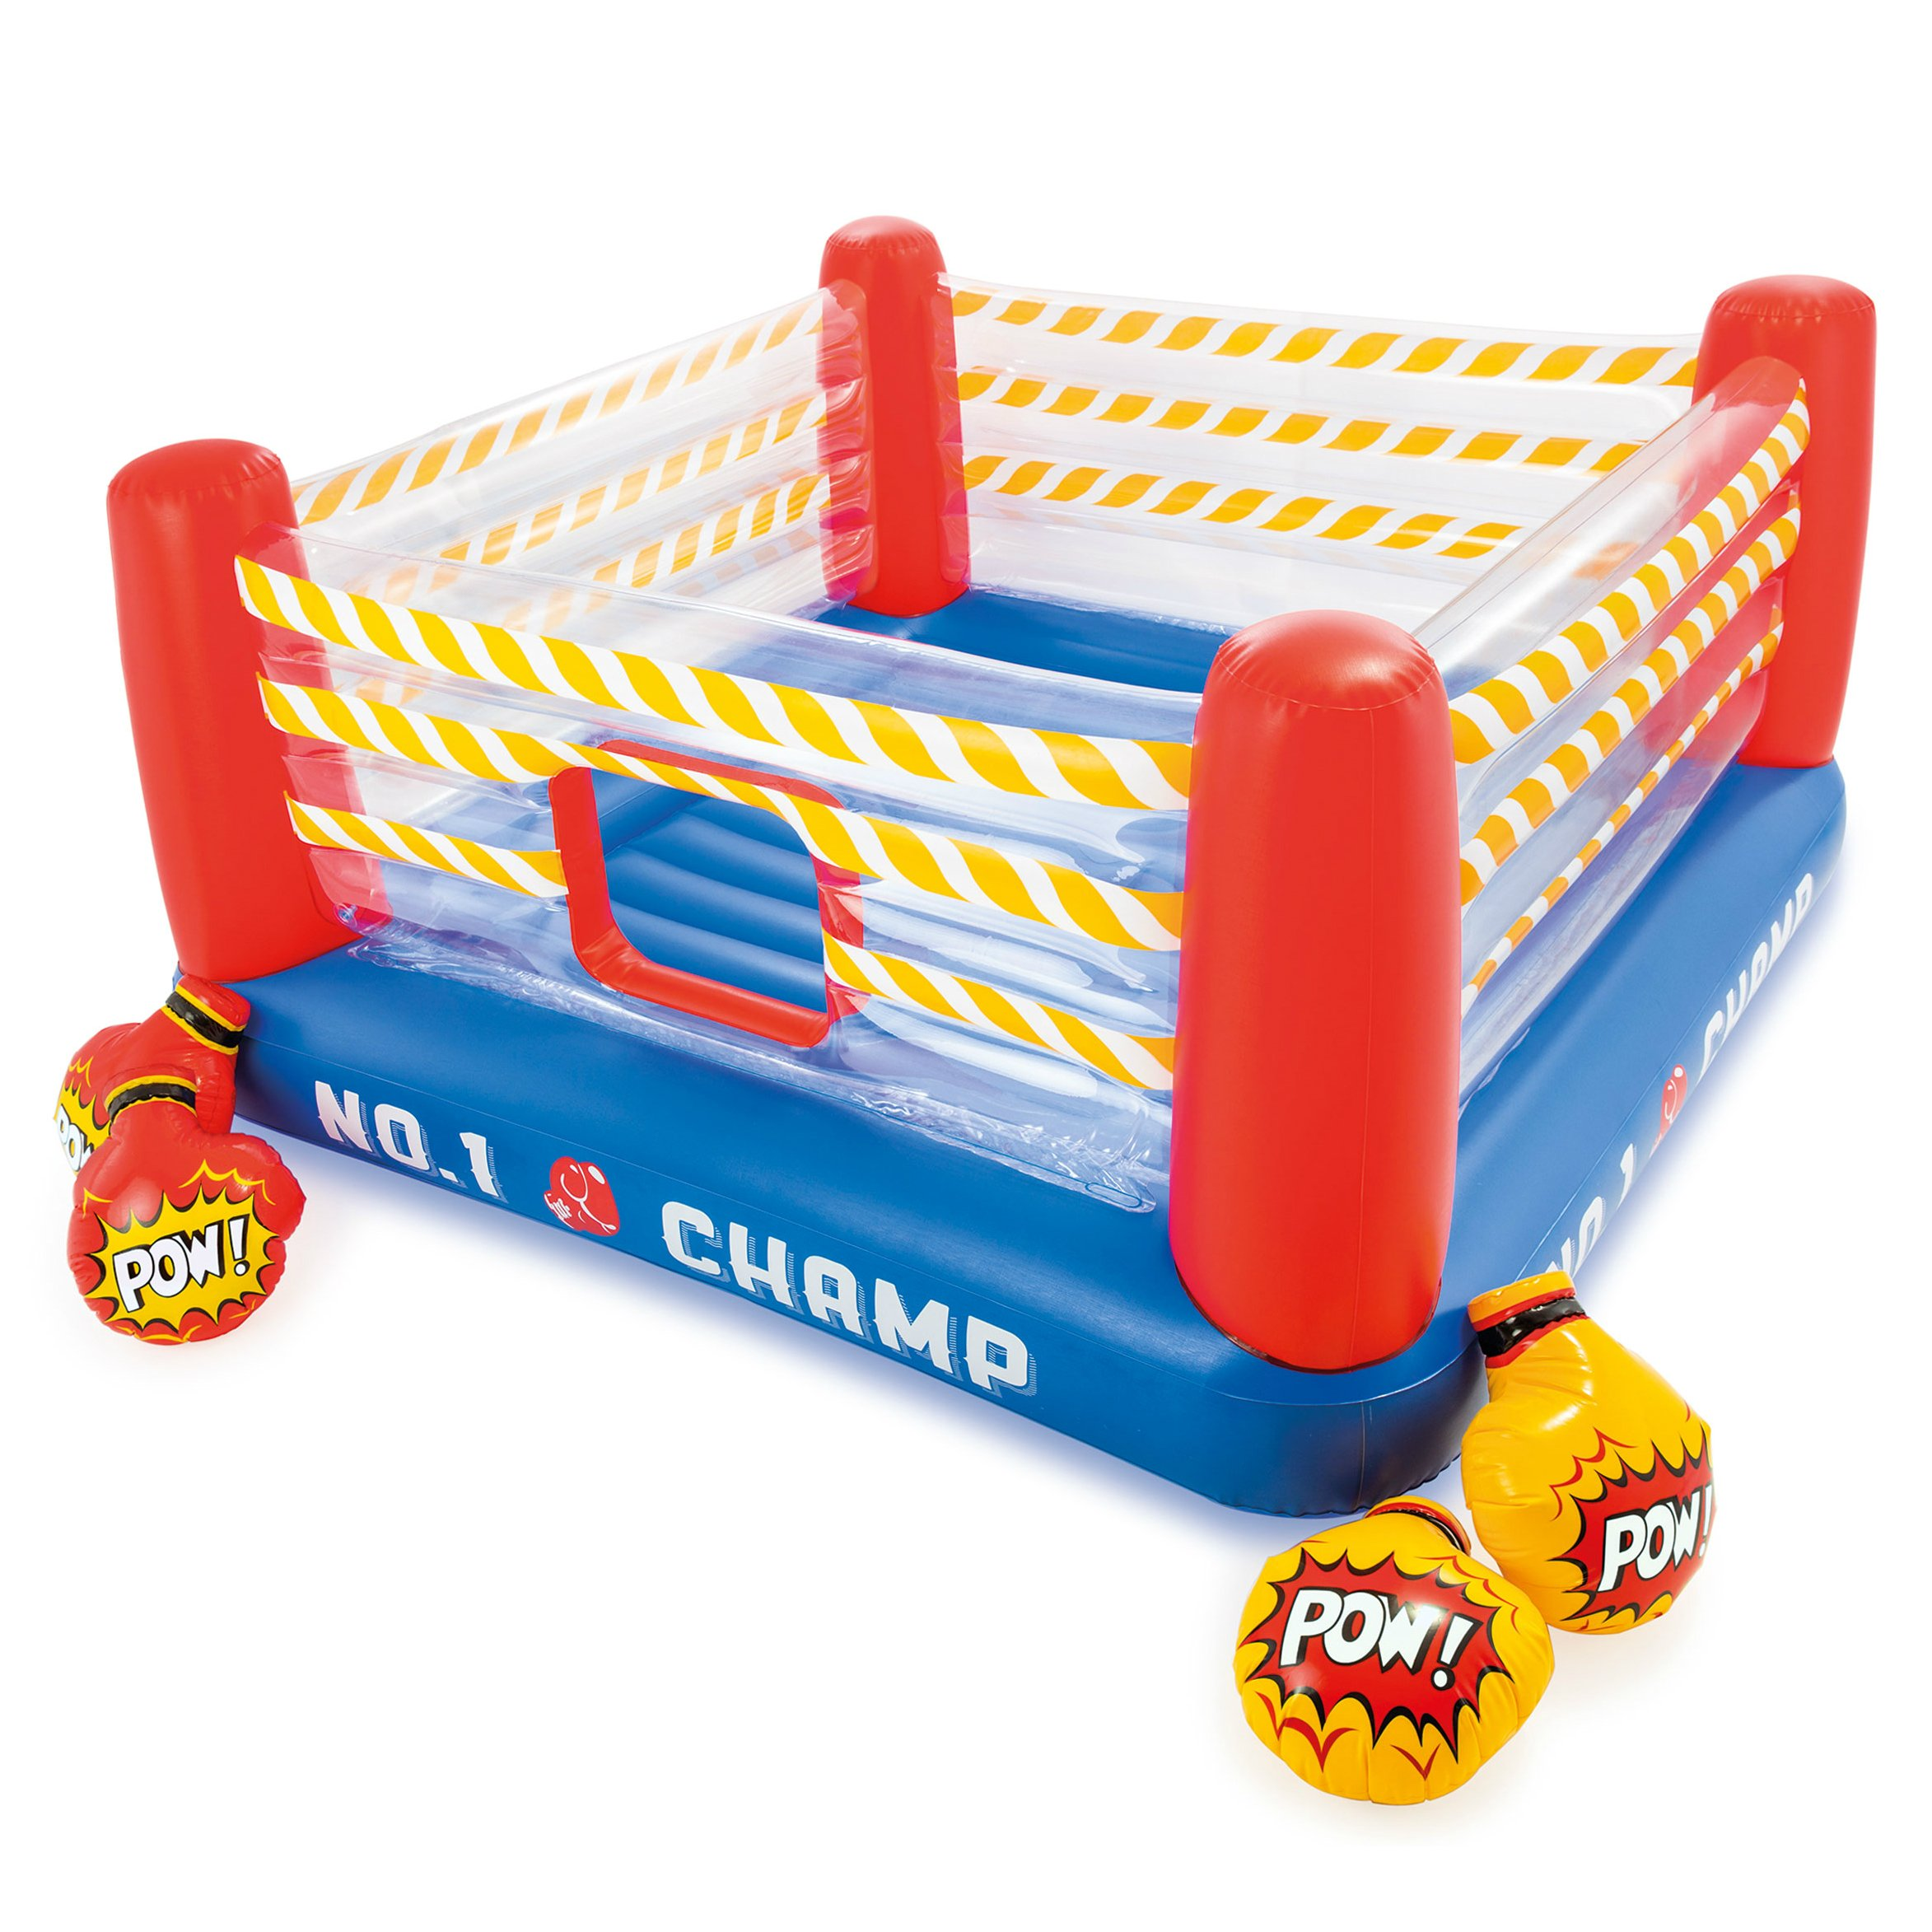 Intex Jump-O-Lene Boxing Ring Inflatable Bouncer, 89'' X 89'' X 43.5'', for Ages 5-7 by Intex